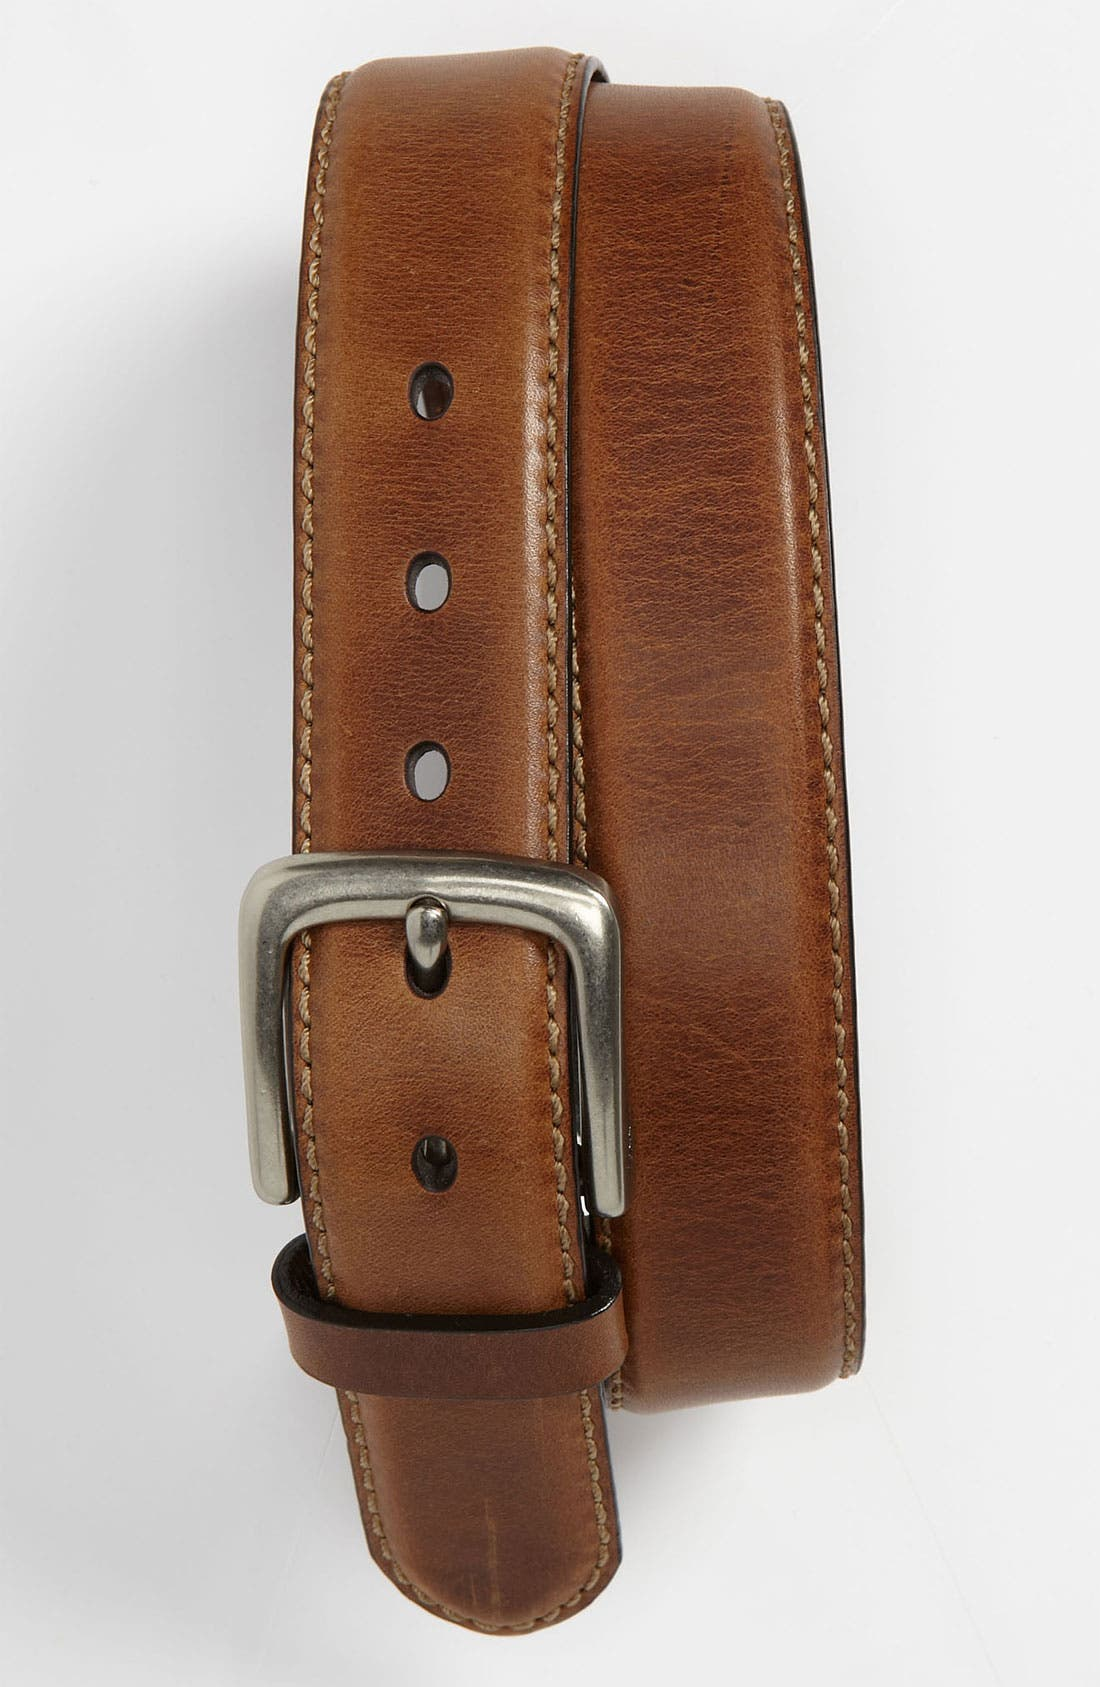 Fossil 'Aiden' Leather Belt